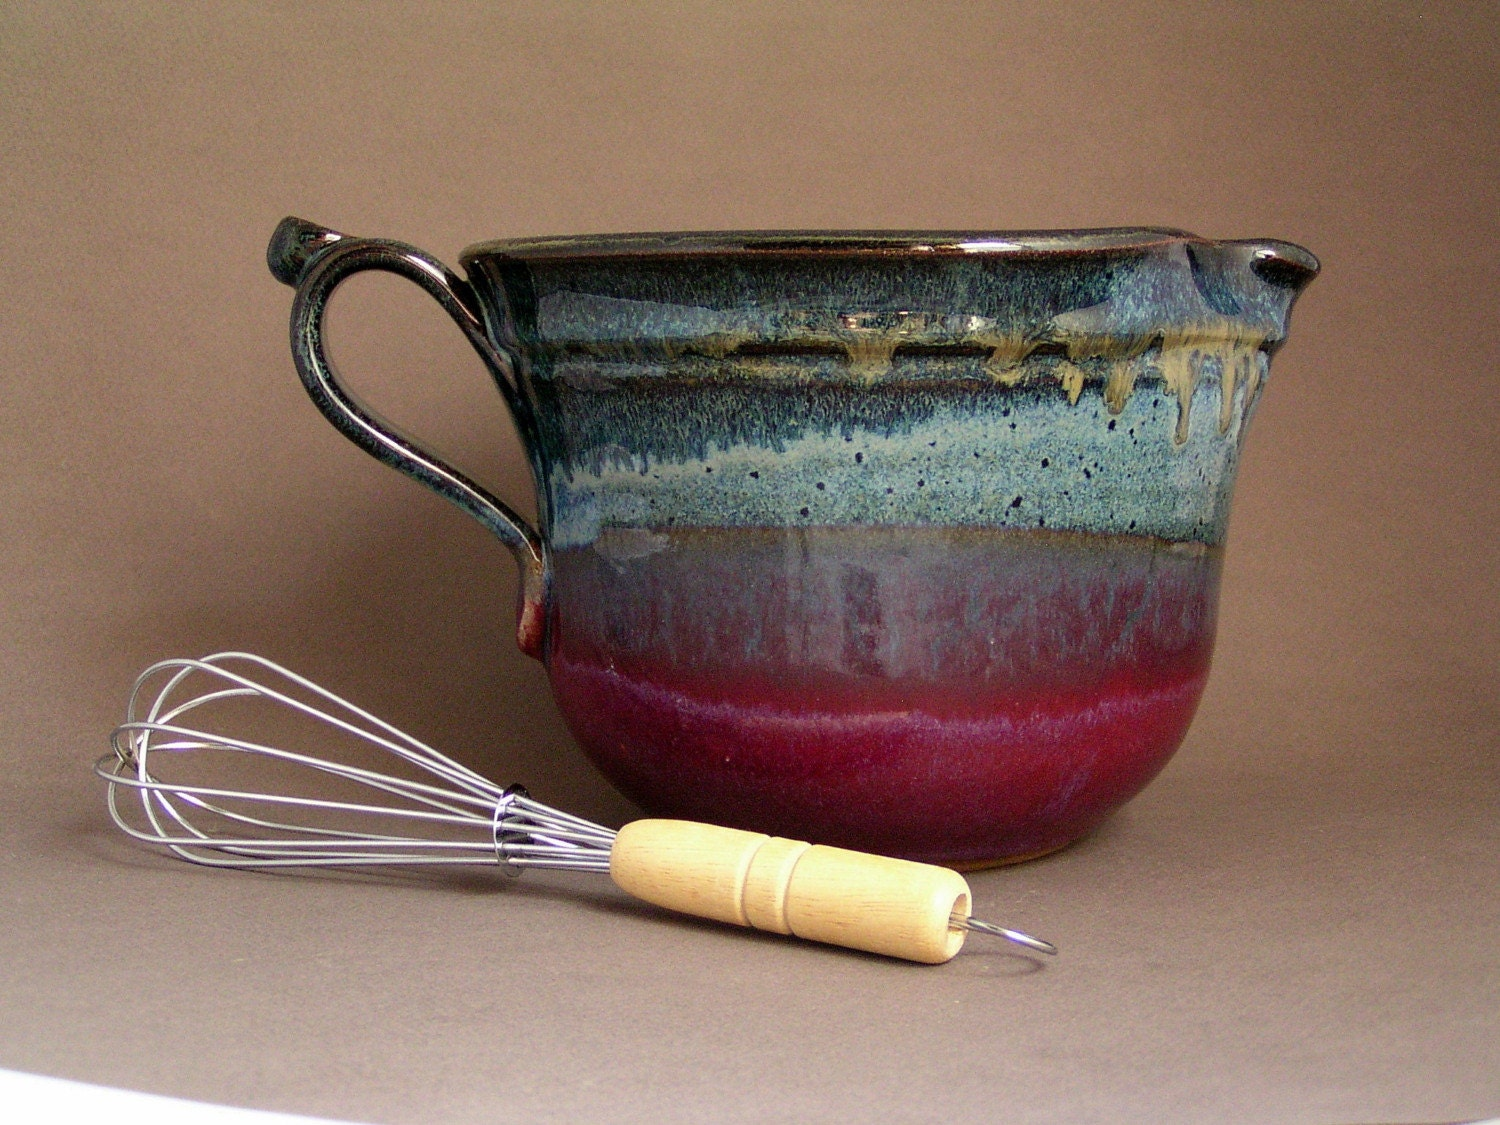 Medium Mixing Bowl with Whisk